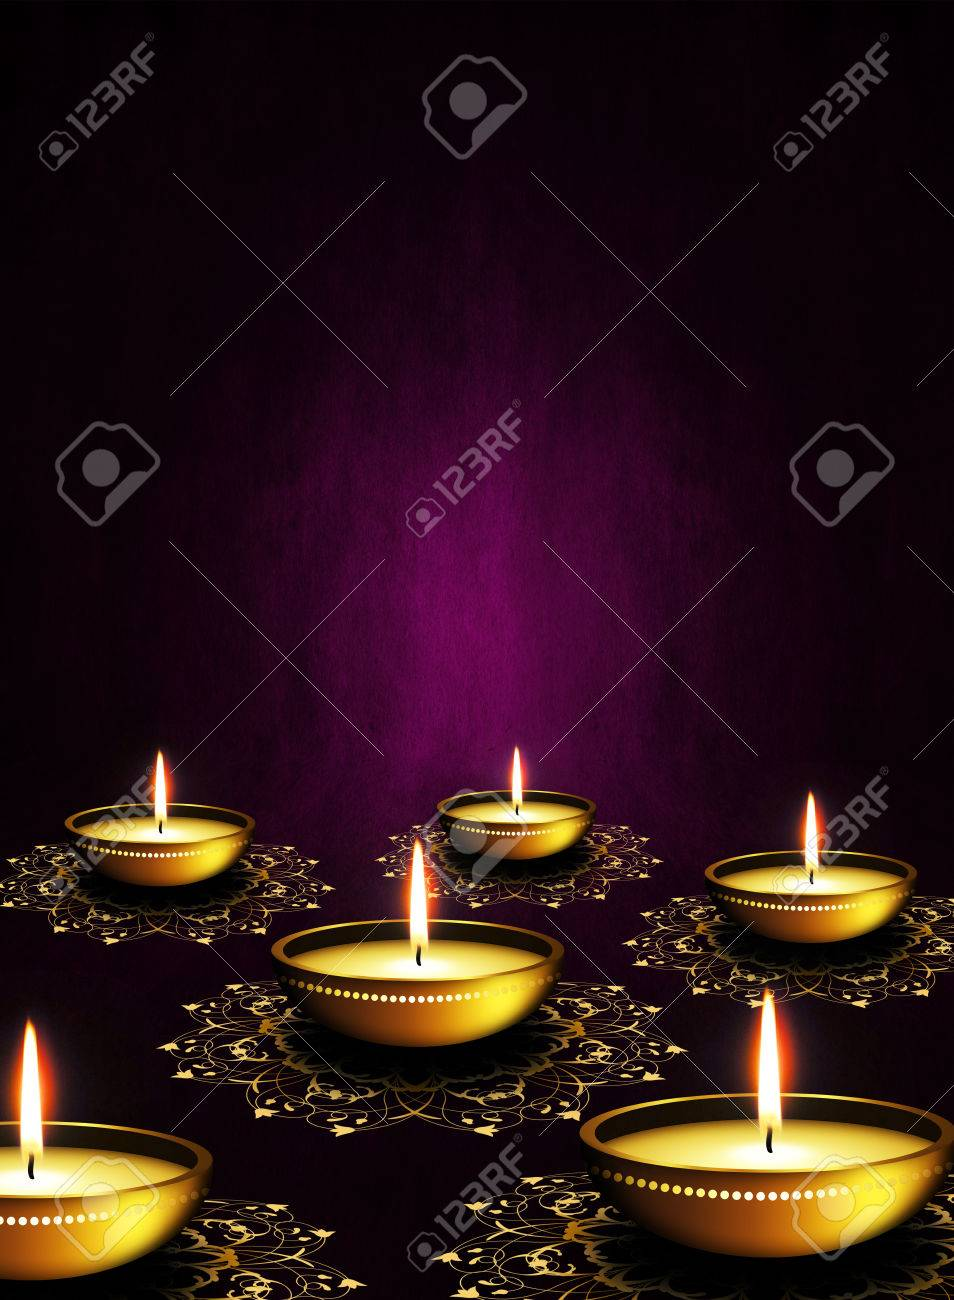 Oil Lamps With Place For Diwali Greetings Over Dark Violet